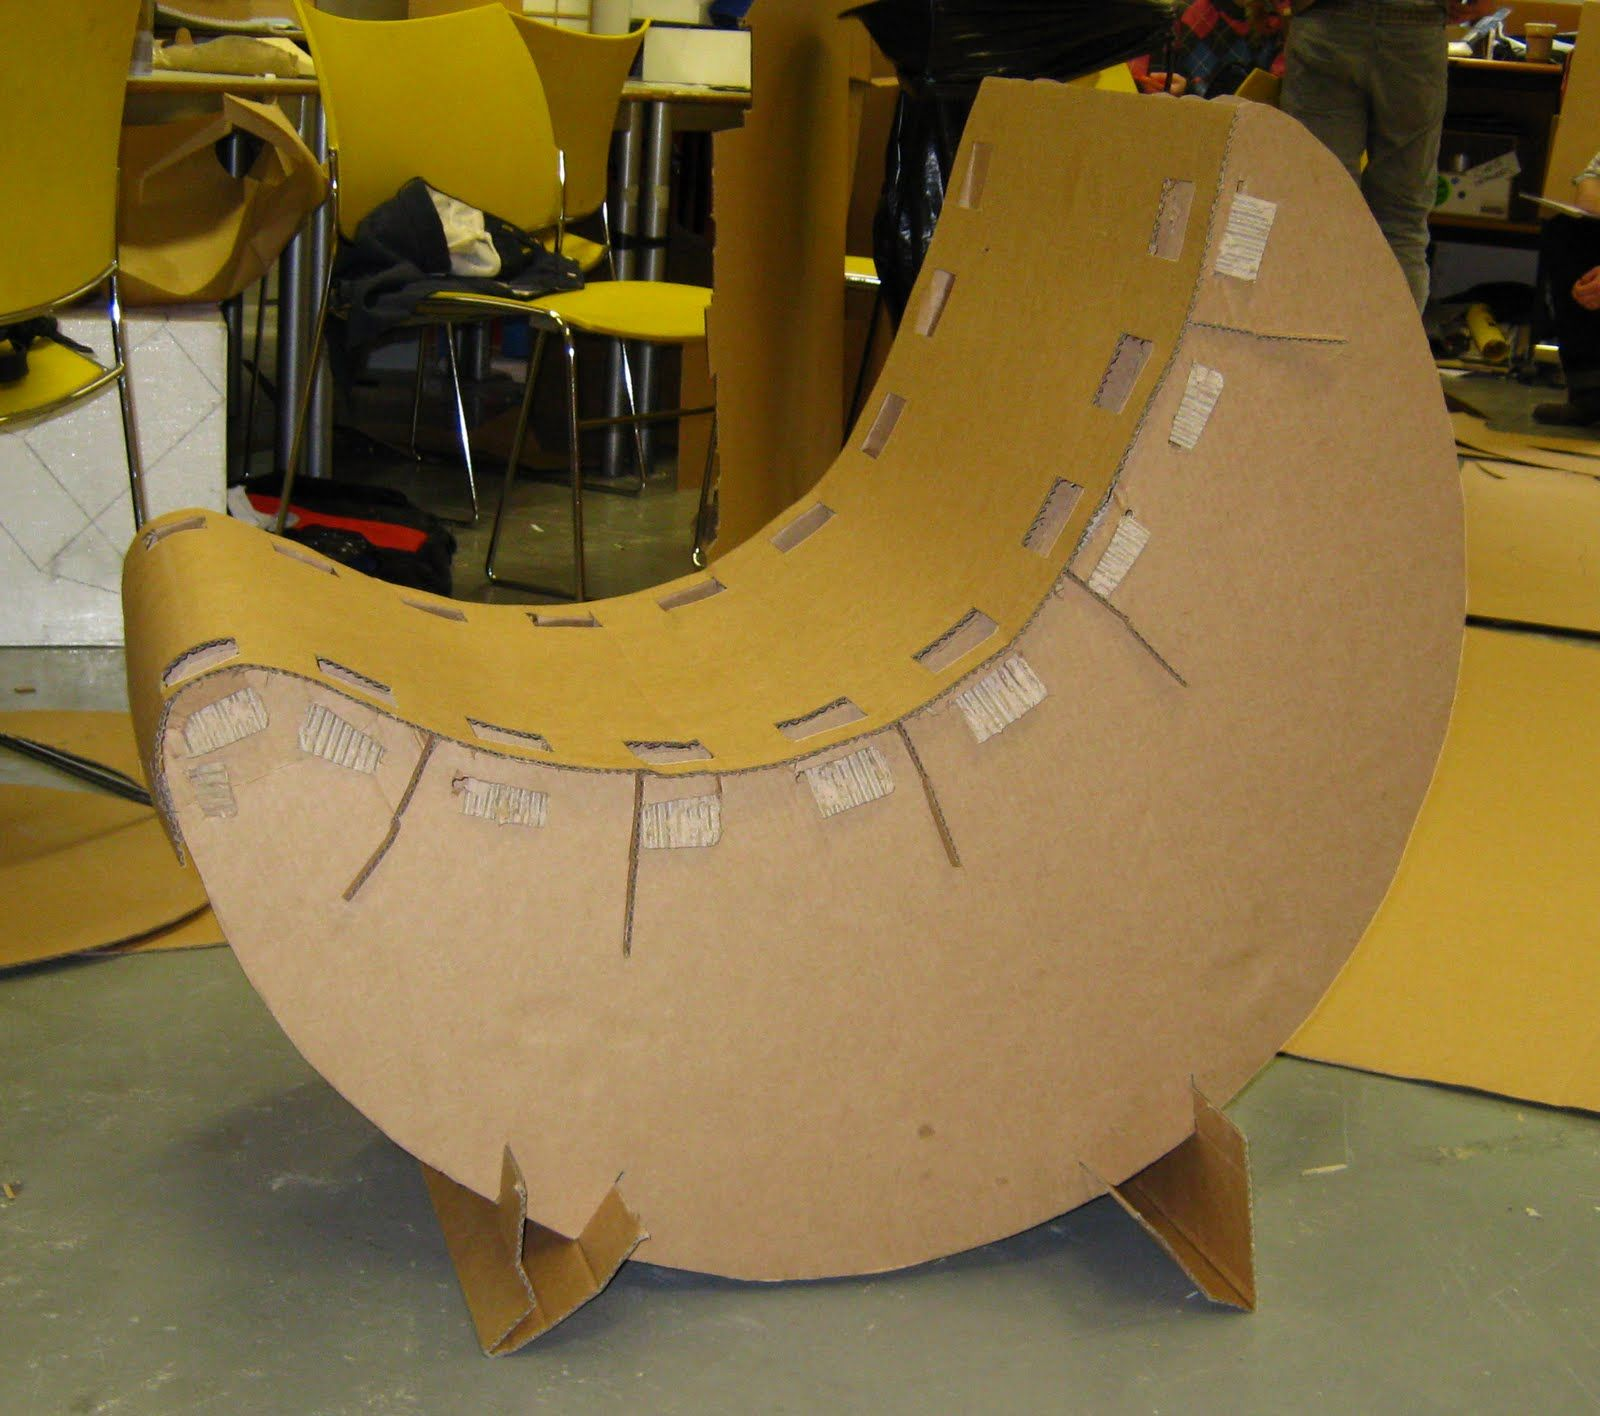 Banana Rocker Chair Banana Cardboard Chair Cardboard Chairs Cardboard Furniture